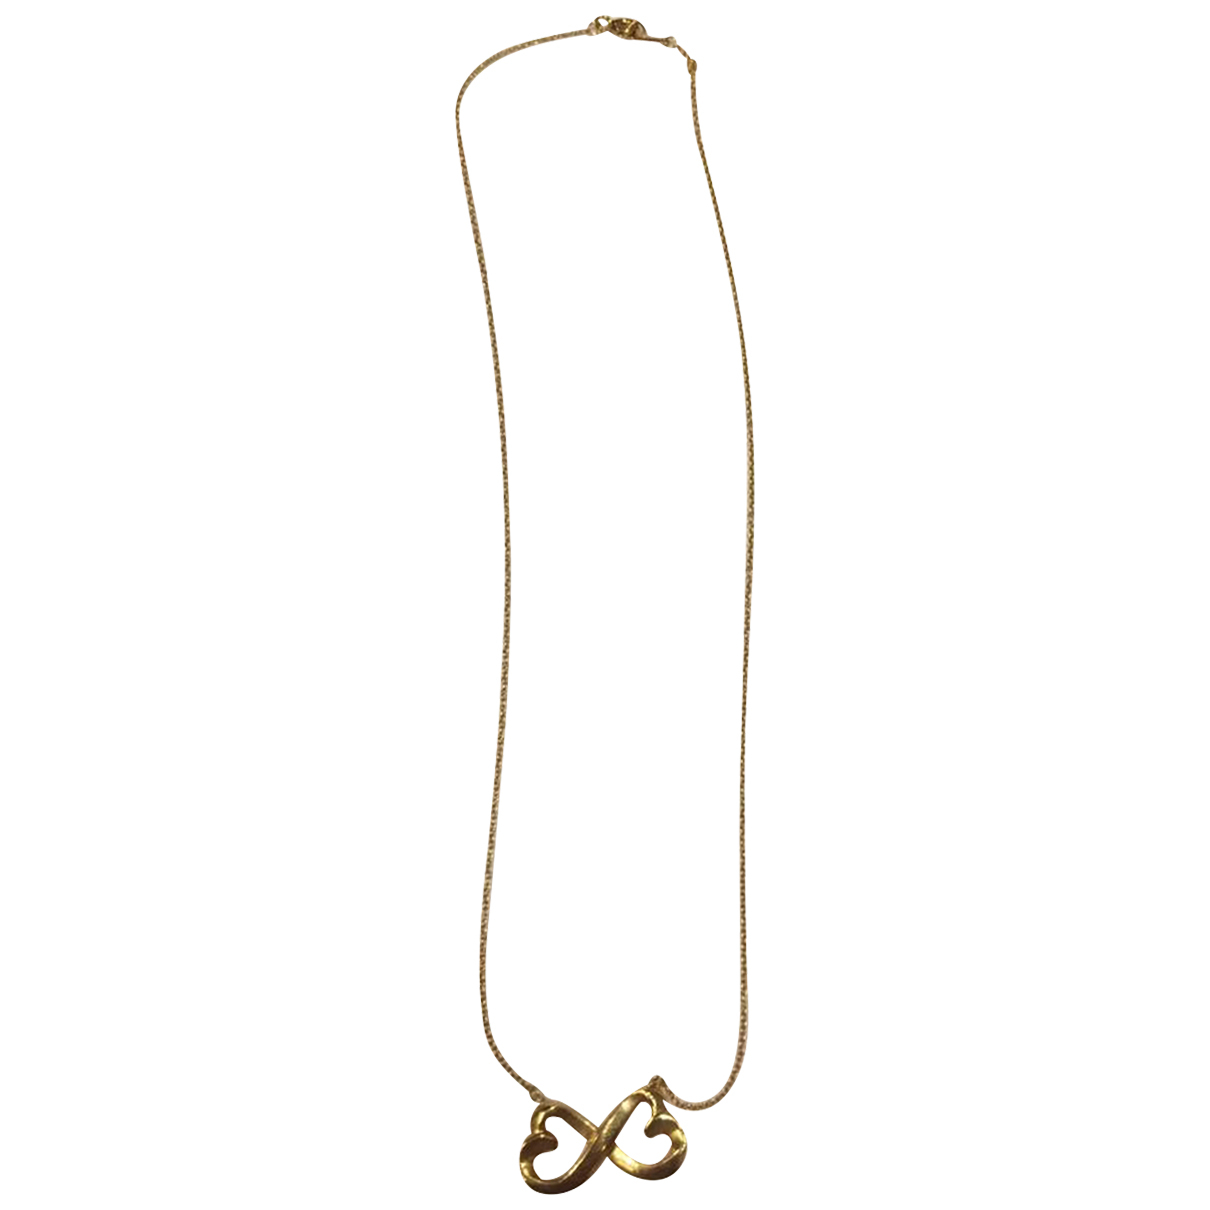 Tiffany & Co - Collier Tiffany Infinity pour femme en or jaune - dore